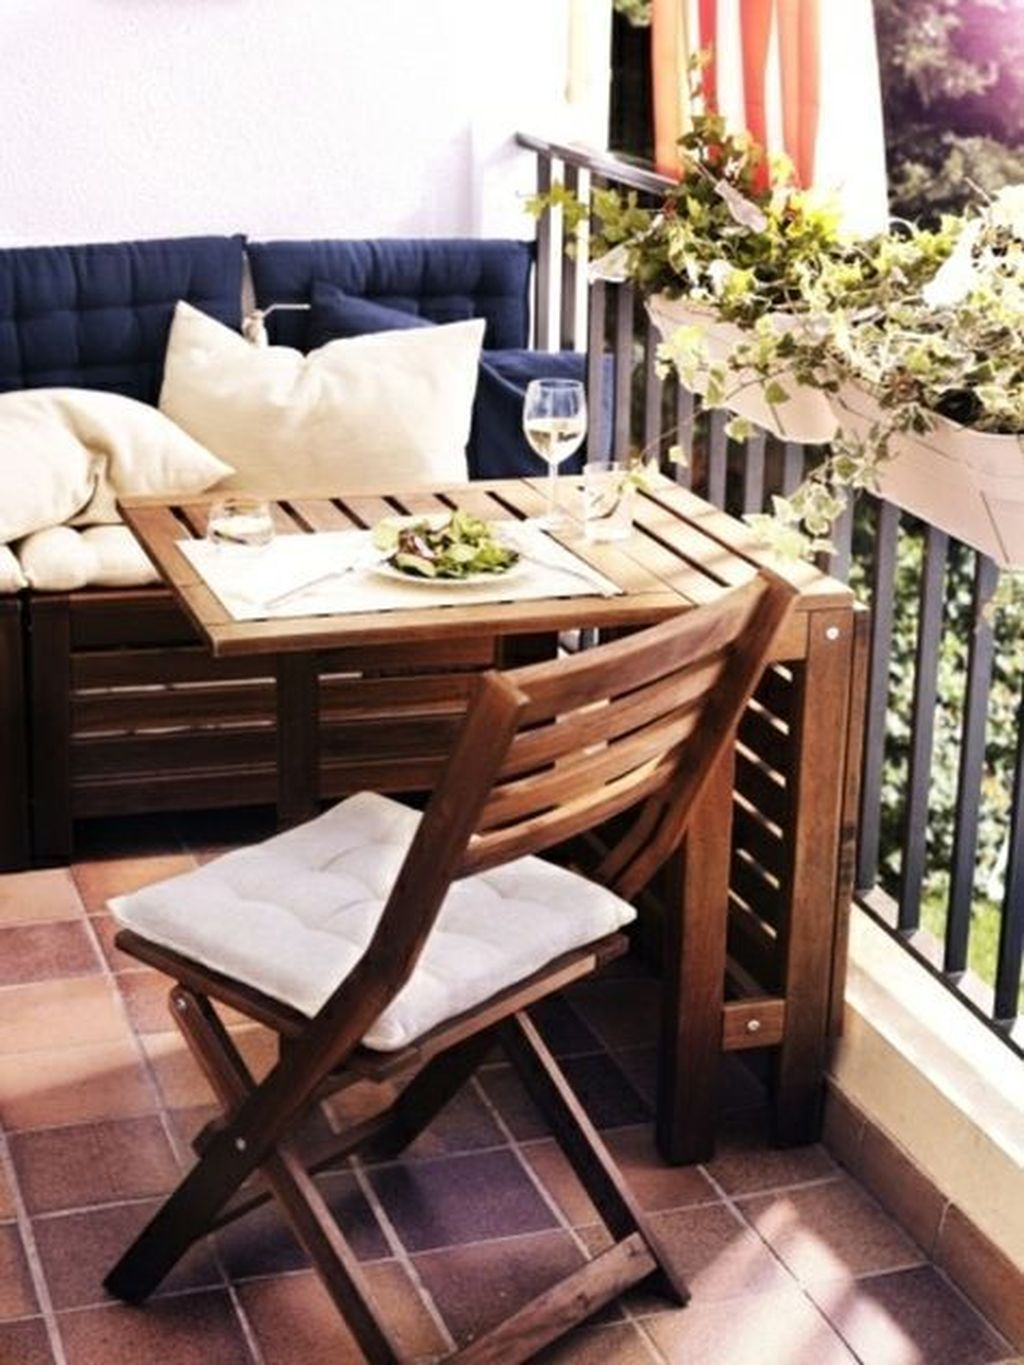 How To Decorate Your Apartment Balcony And Create An Outdoor Oasis